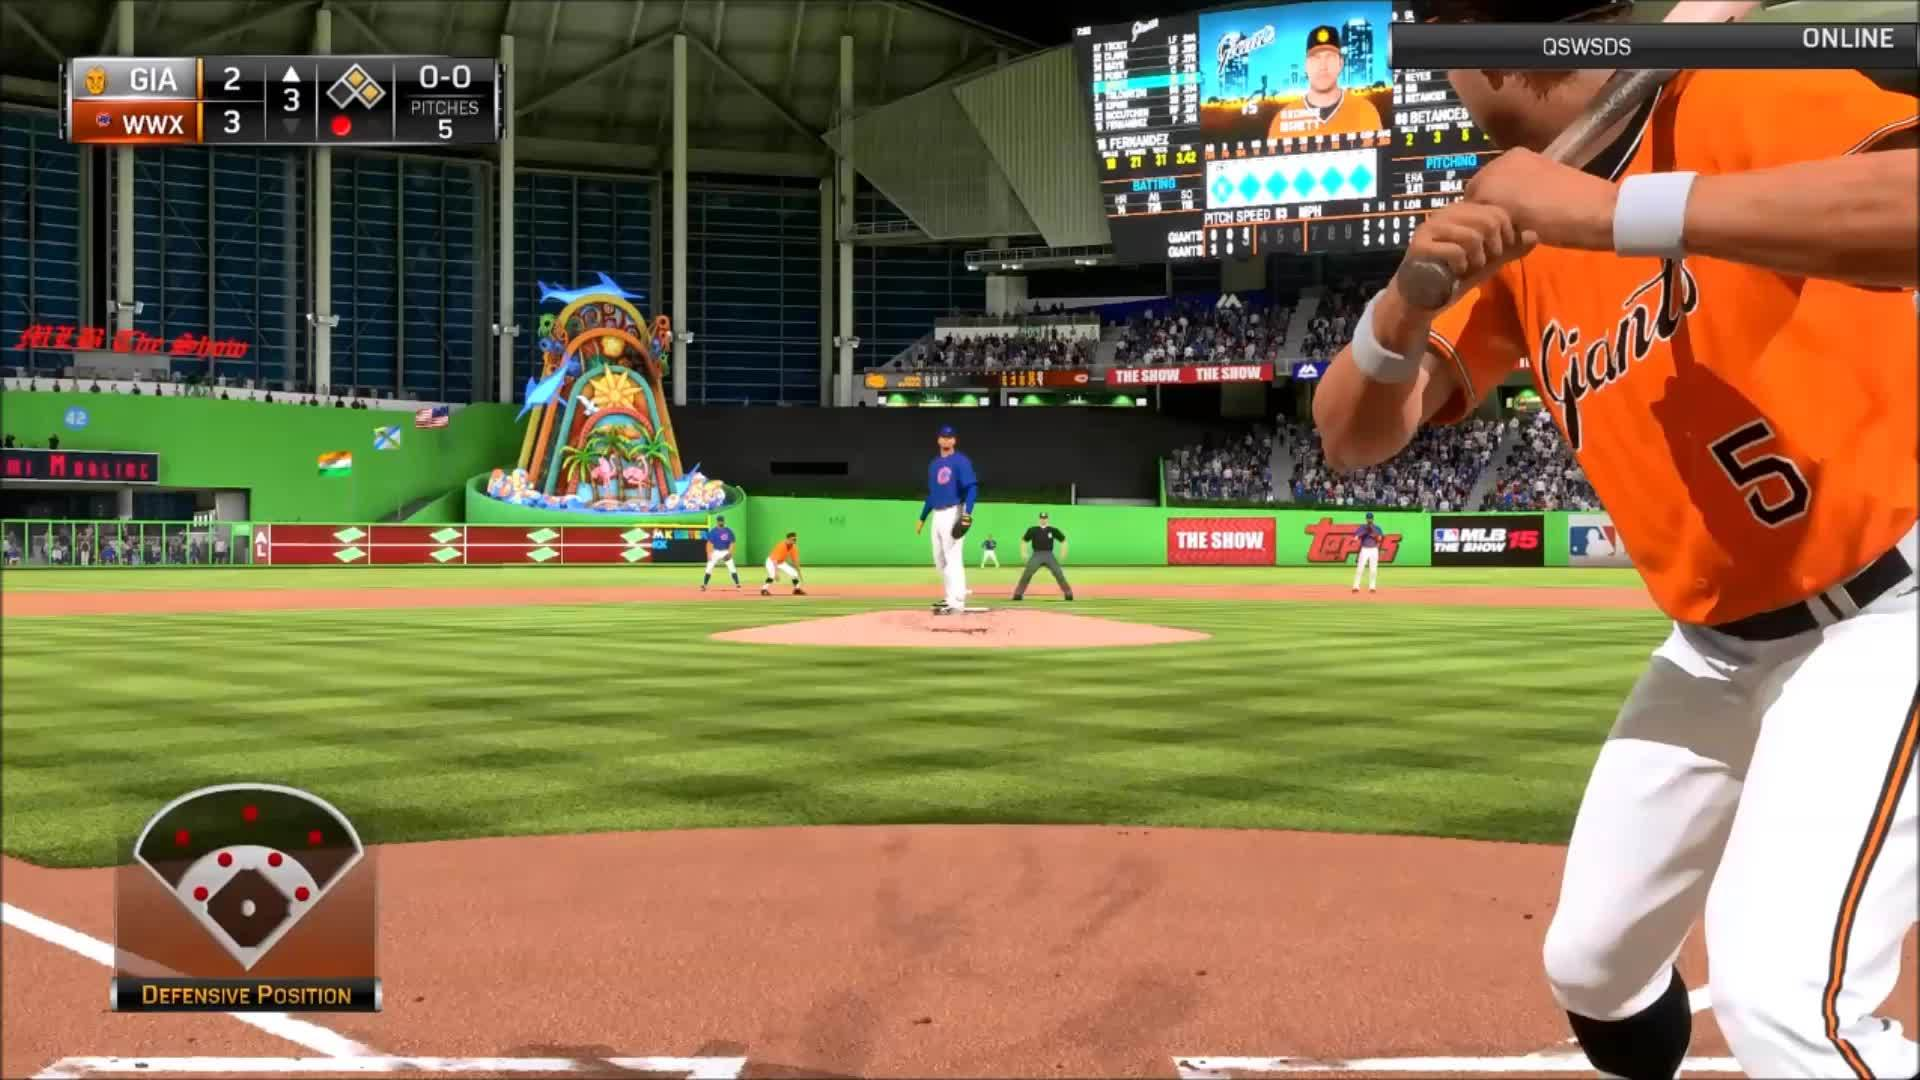 mlbtheshow, Star Player faces lefties - Betances faces righties GIFs